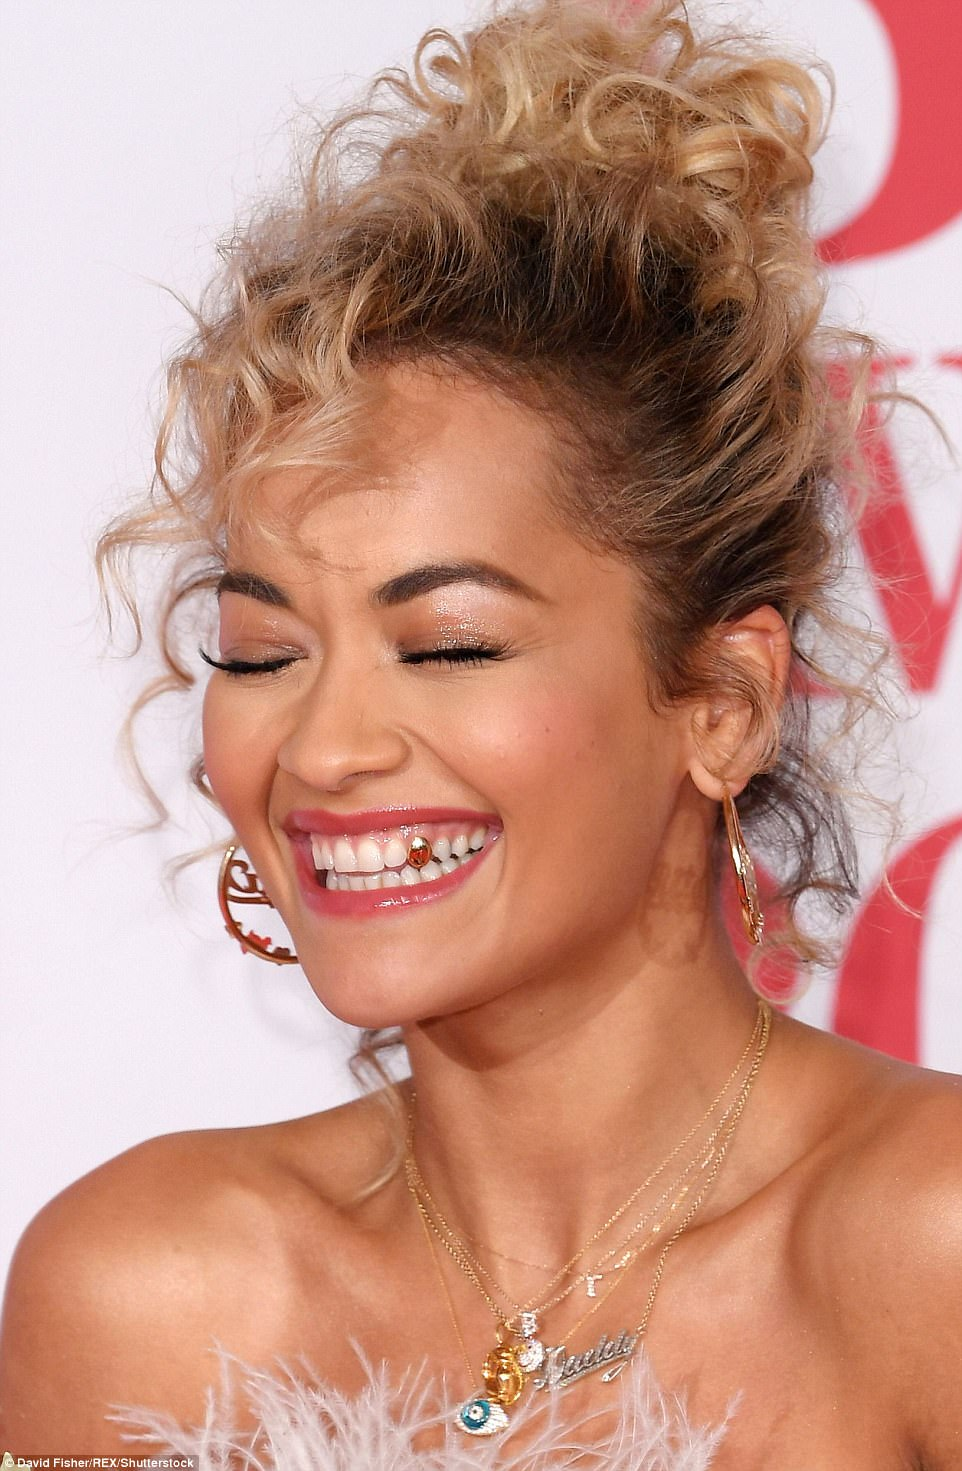 Going for gold: Rita showed off her gold tooth as she giggled on the red carpet